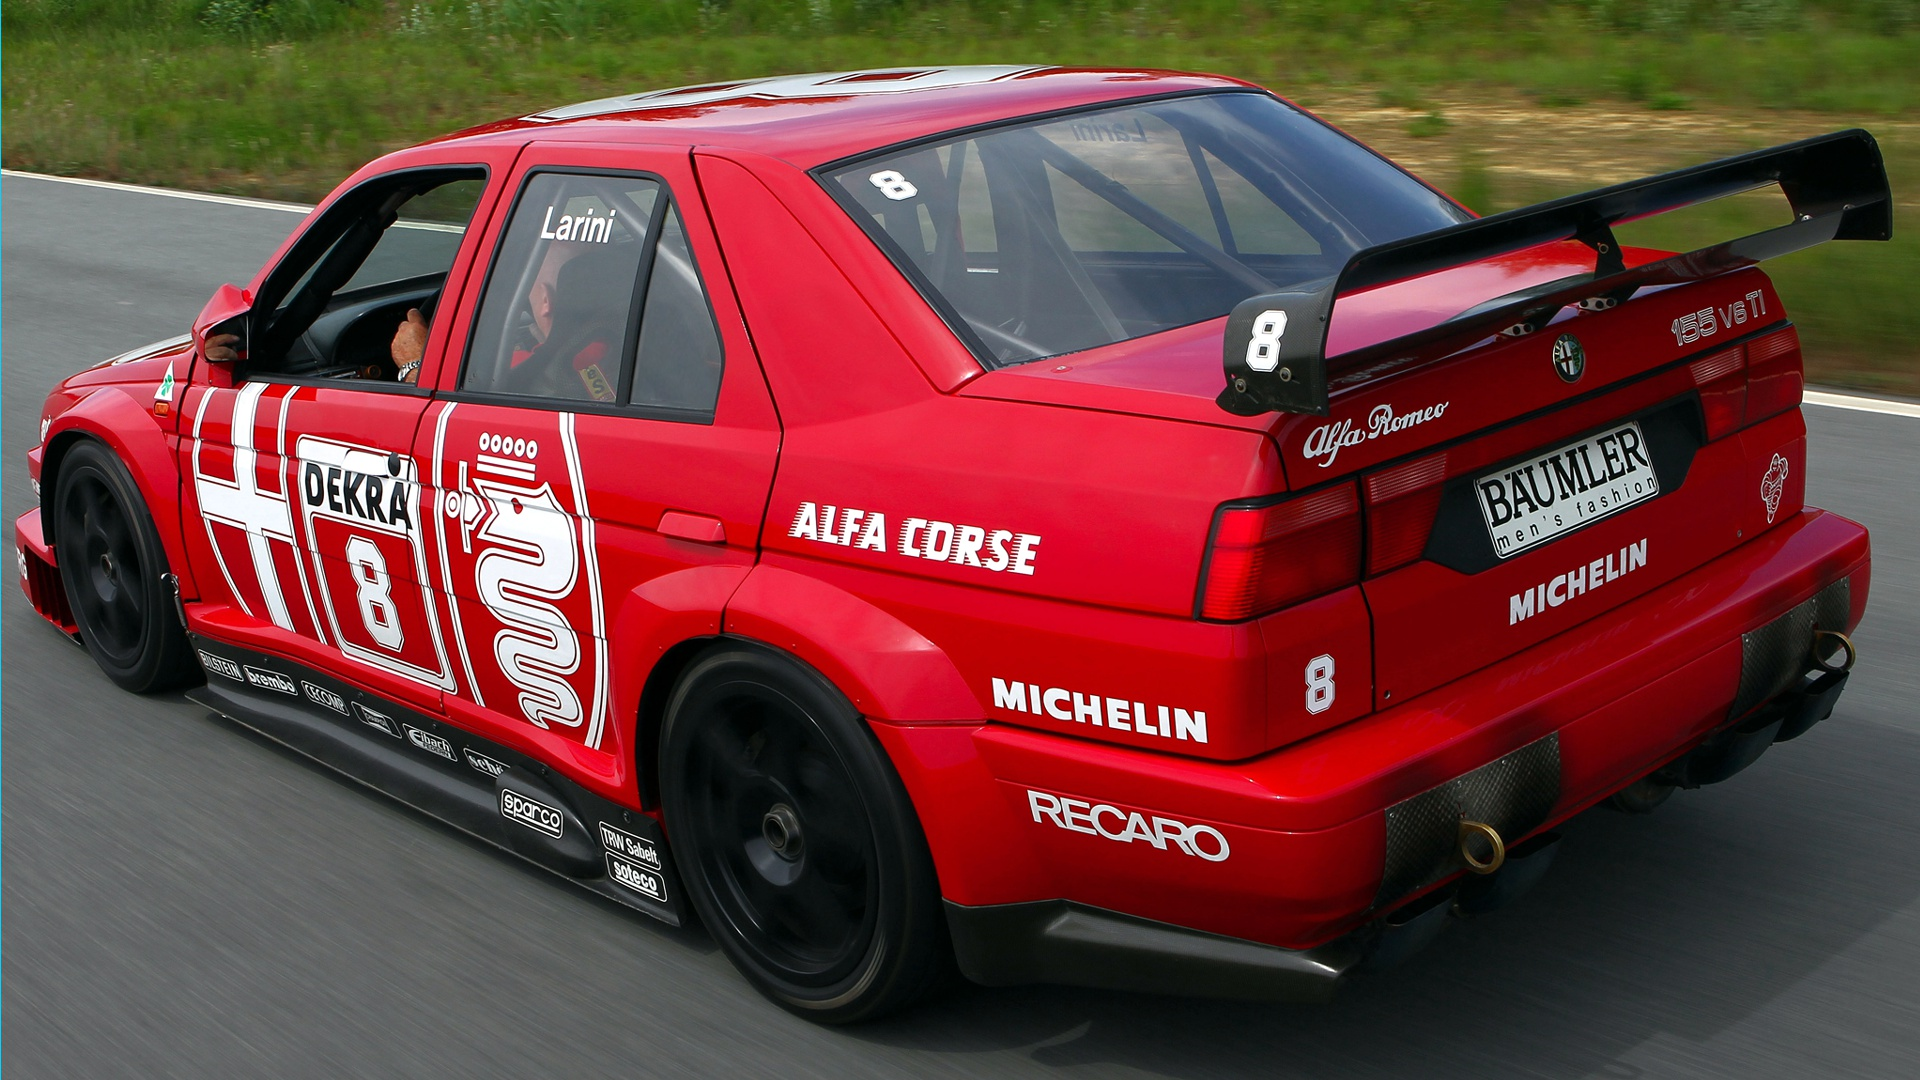 Alfa-Romeo-155-2.5-V6-DTM-1993-hdwallpapers2